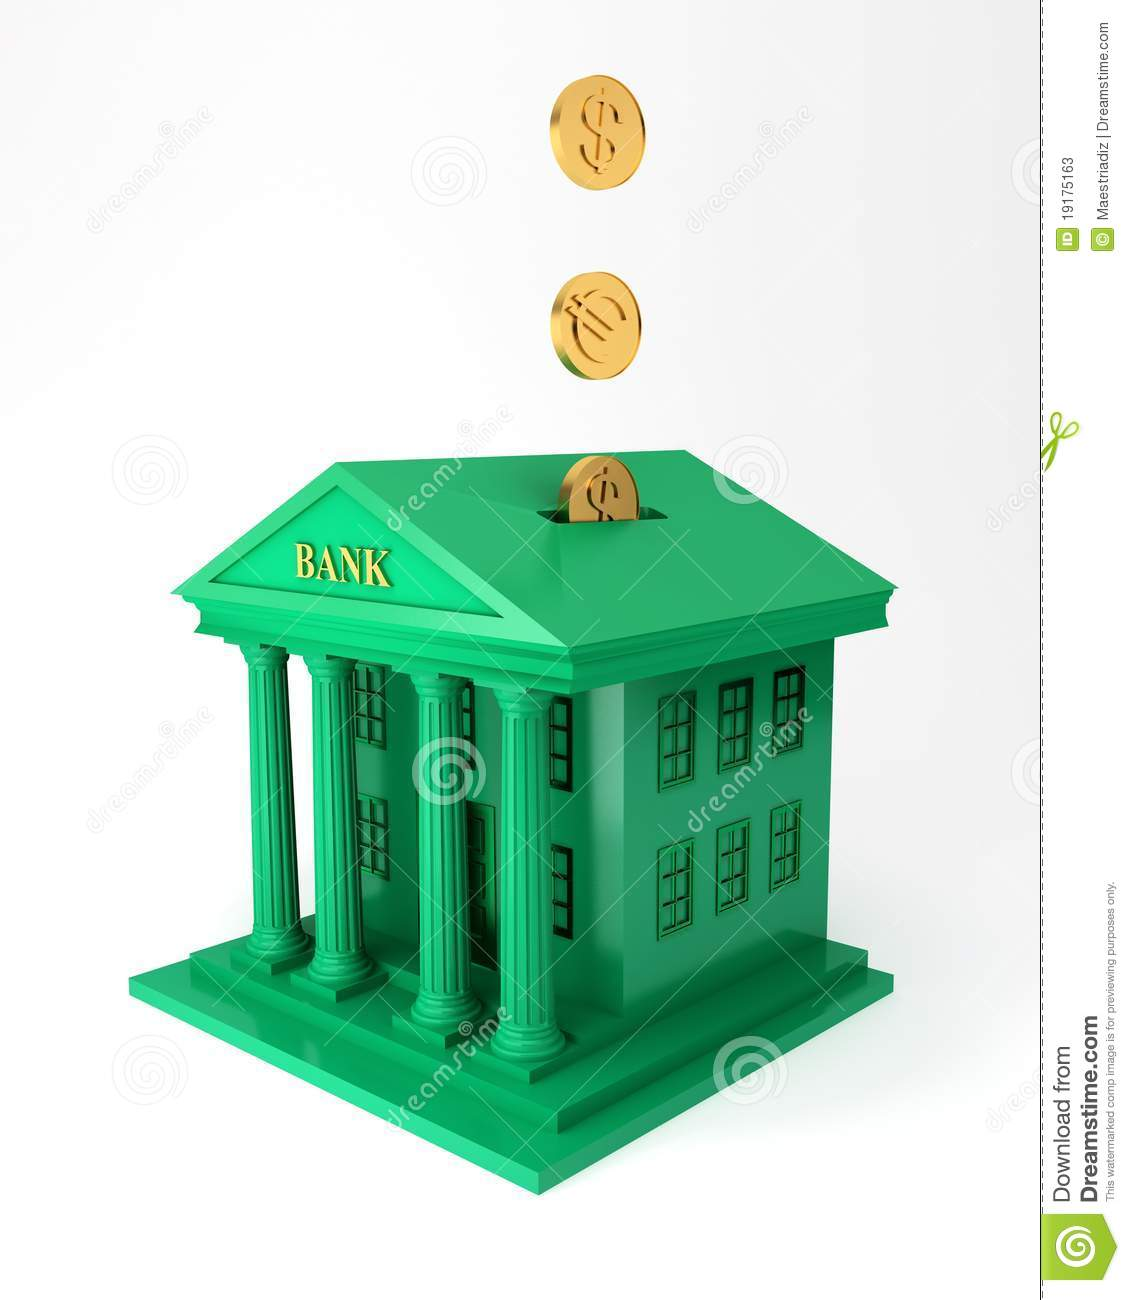 Investment Bank Clipart.